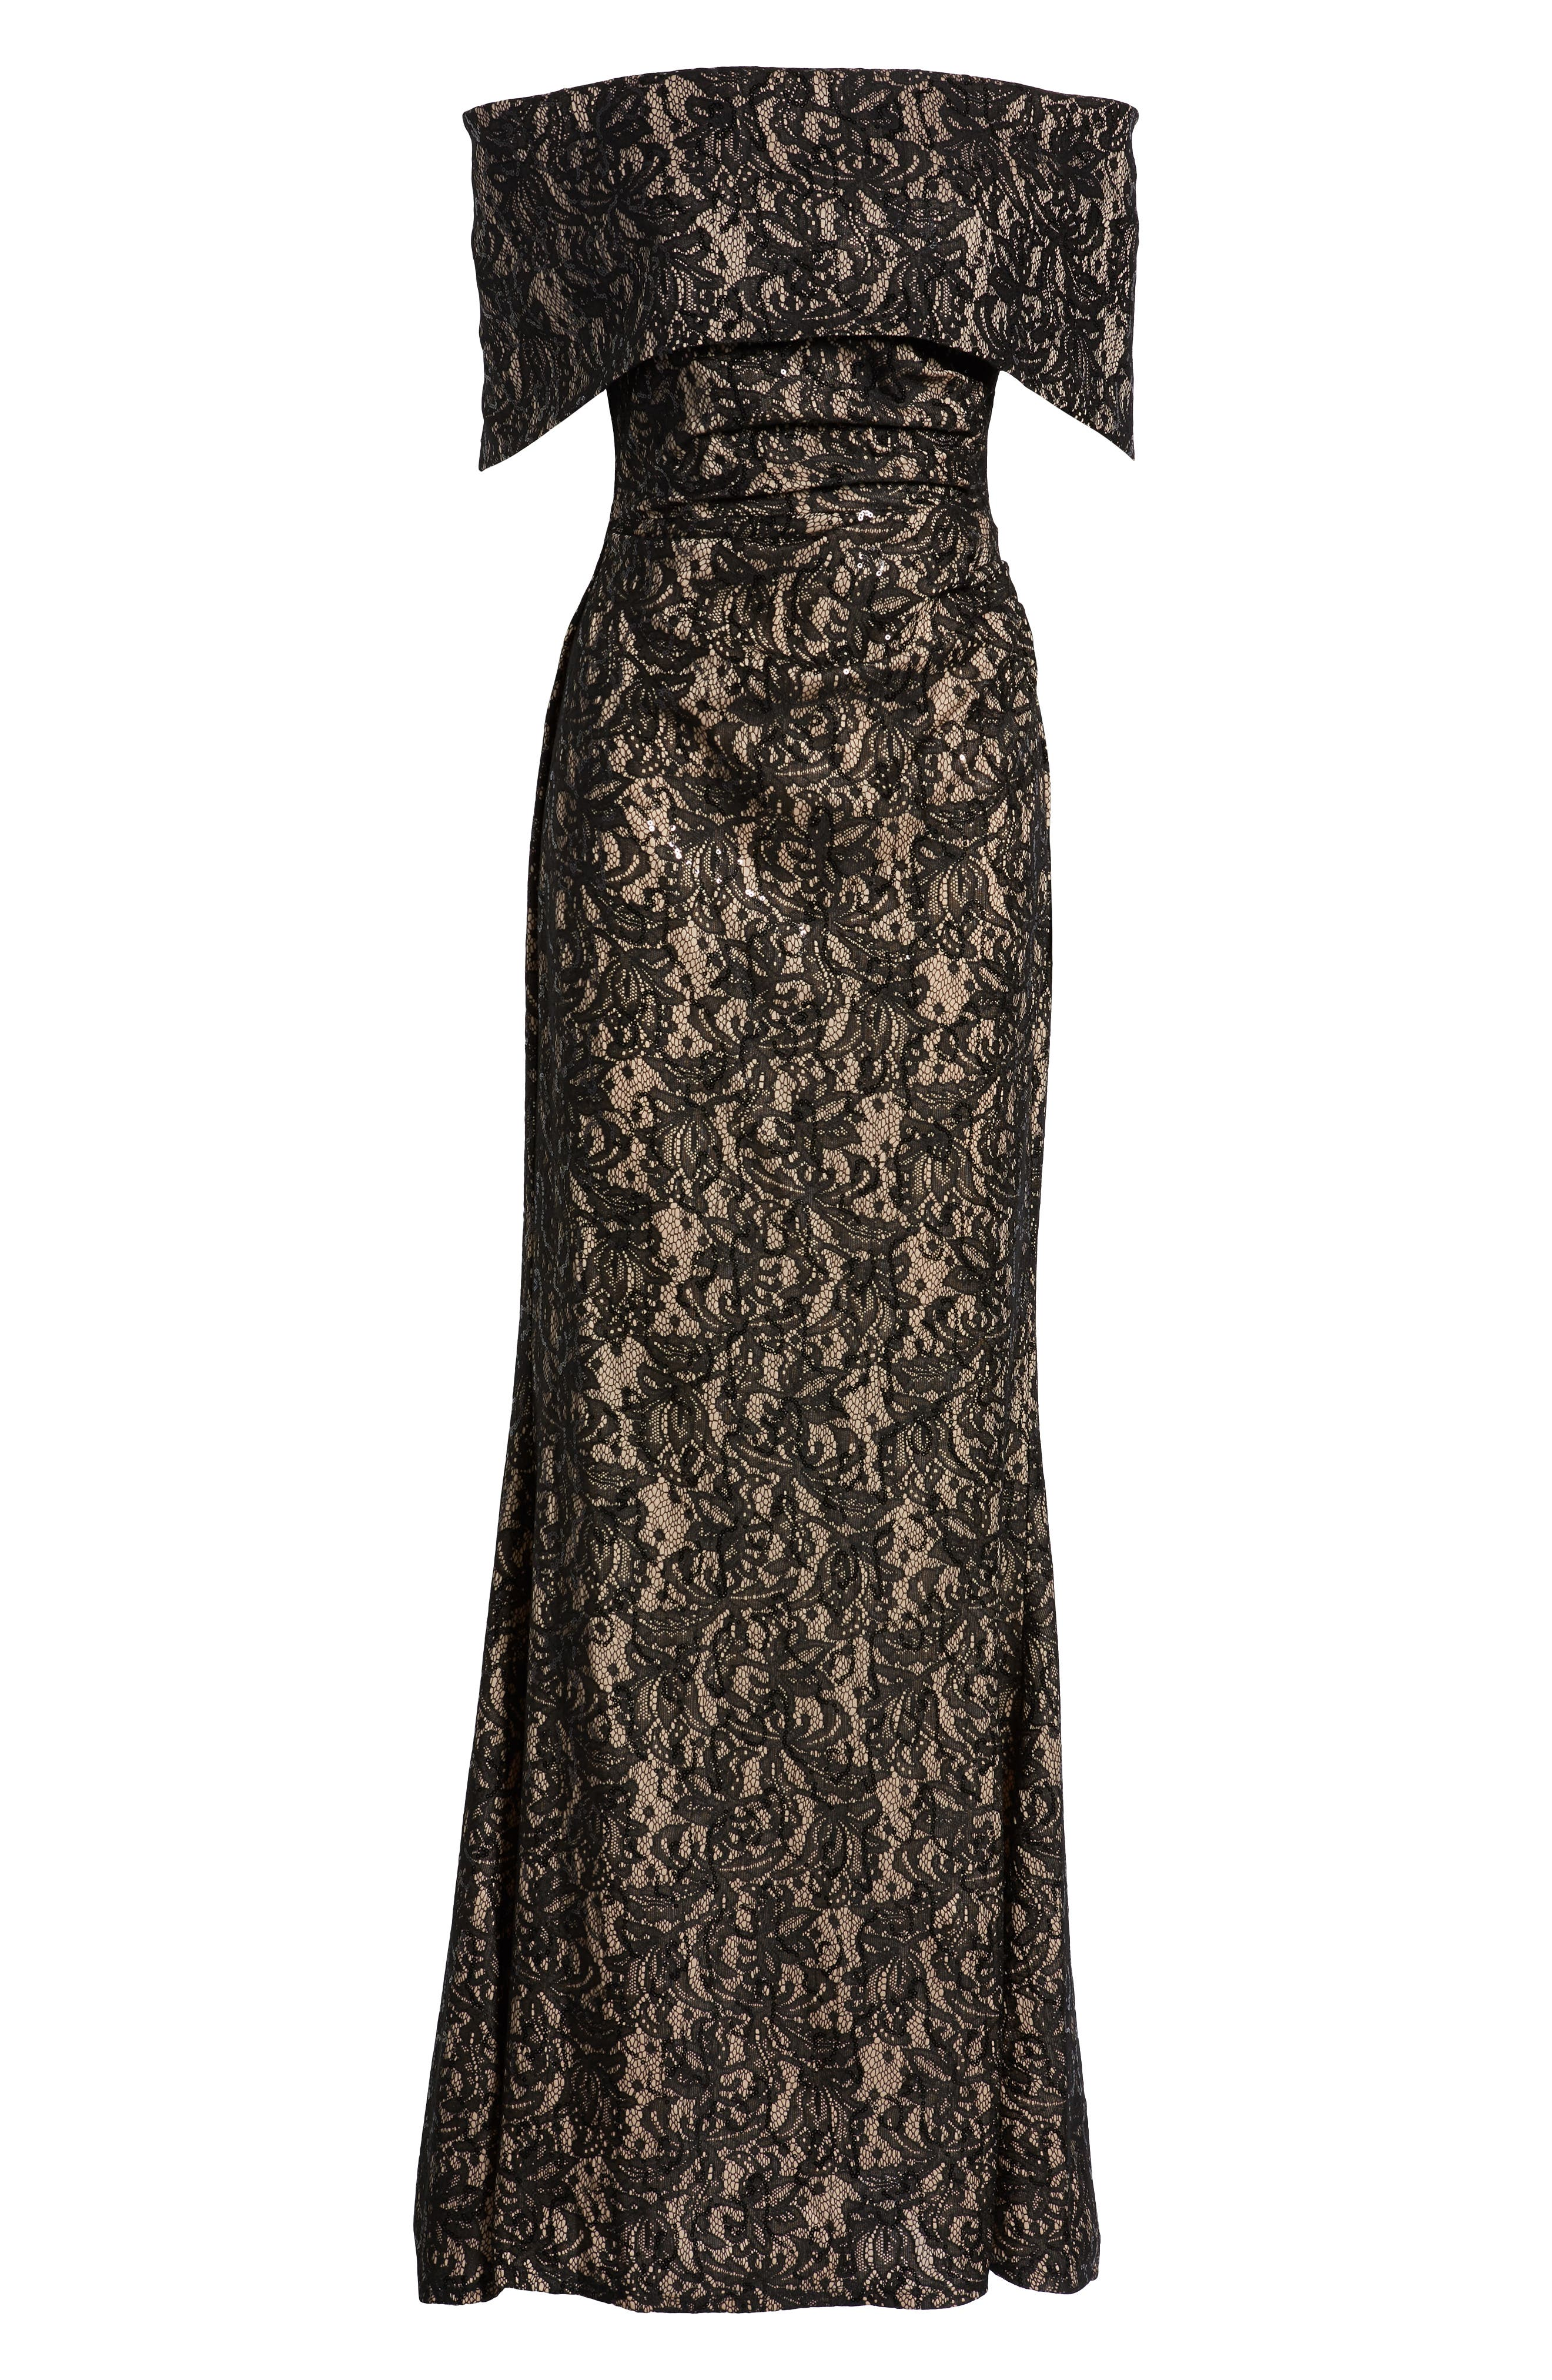 VINCE CAMUTO,                             Sequin Off the Shoulder Gown,                             Alternate thumbnail 7, color,                             BLACK/ TAN